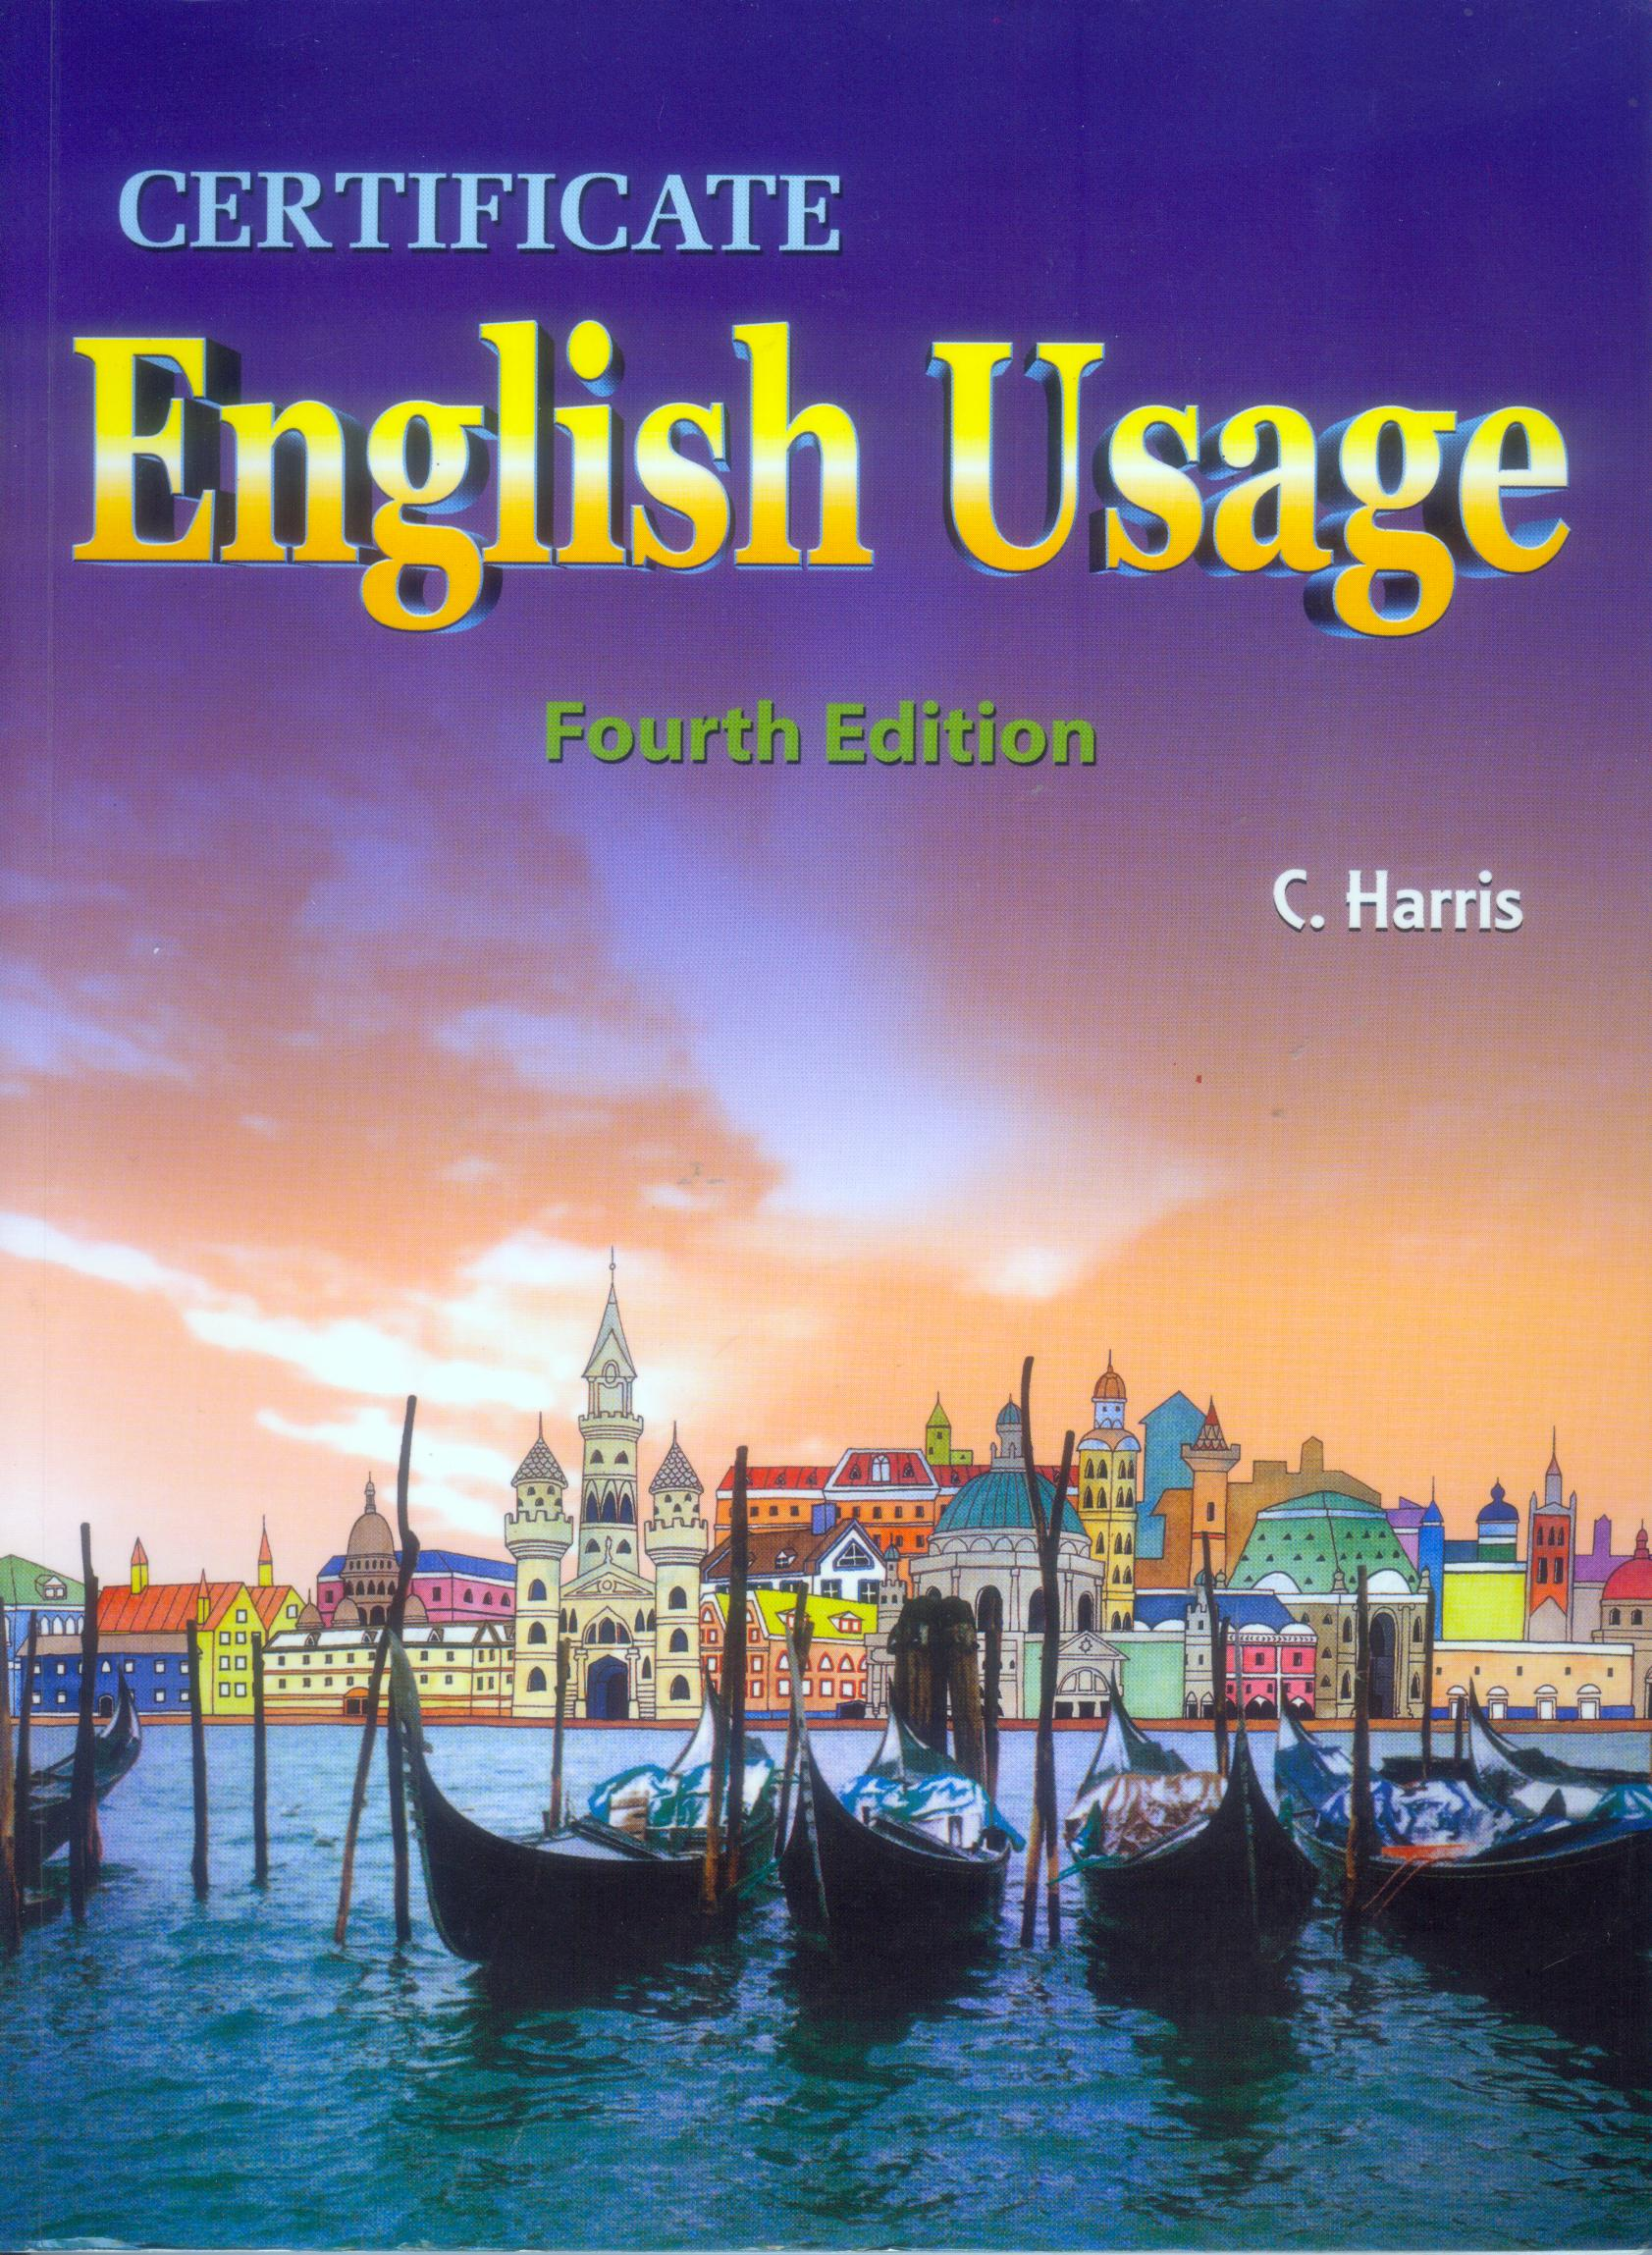 Certificate English Usage